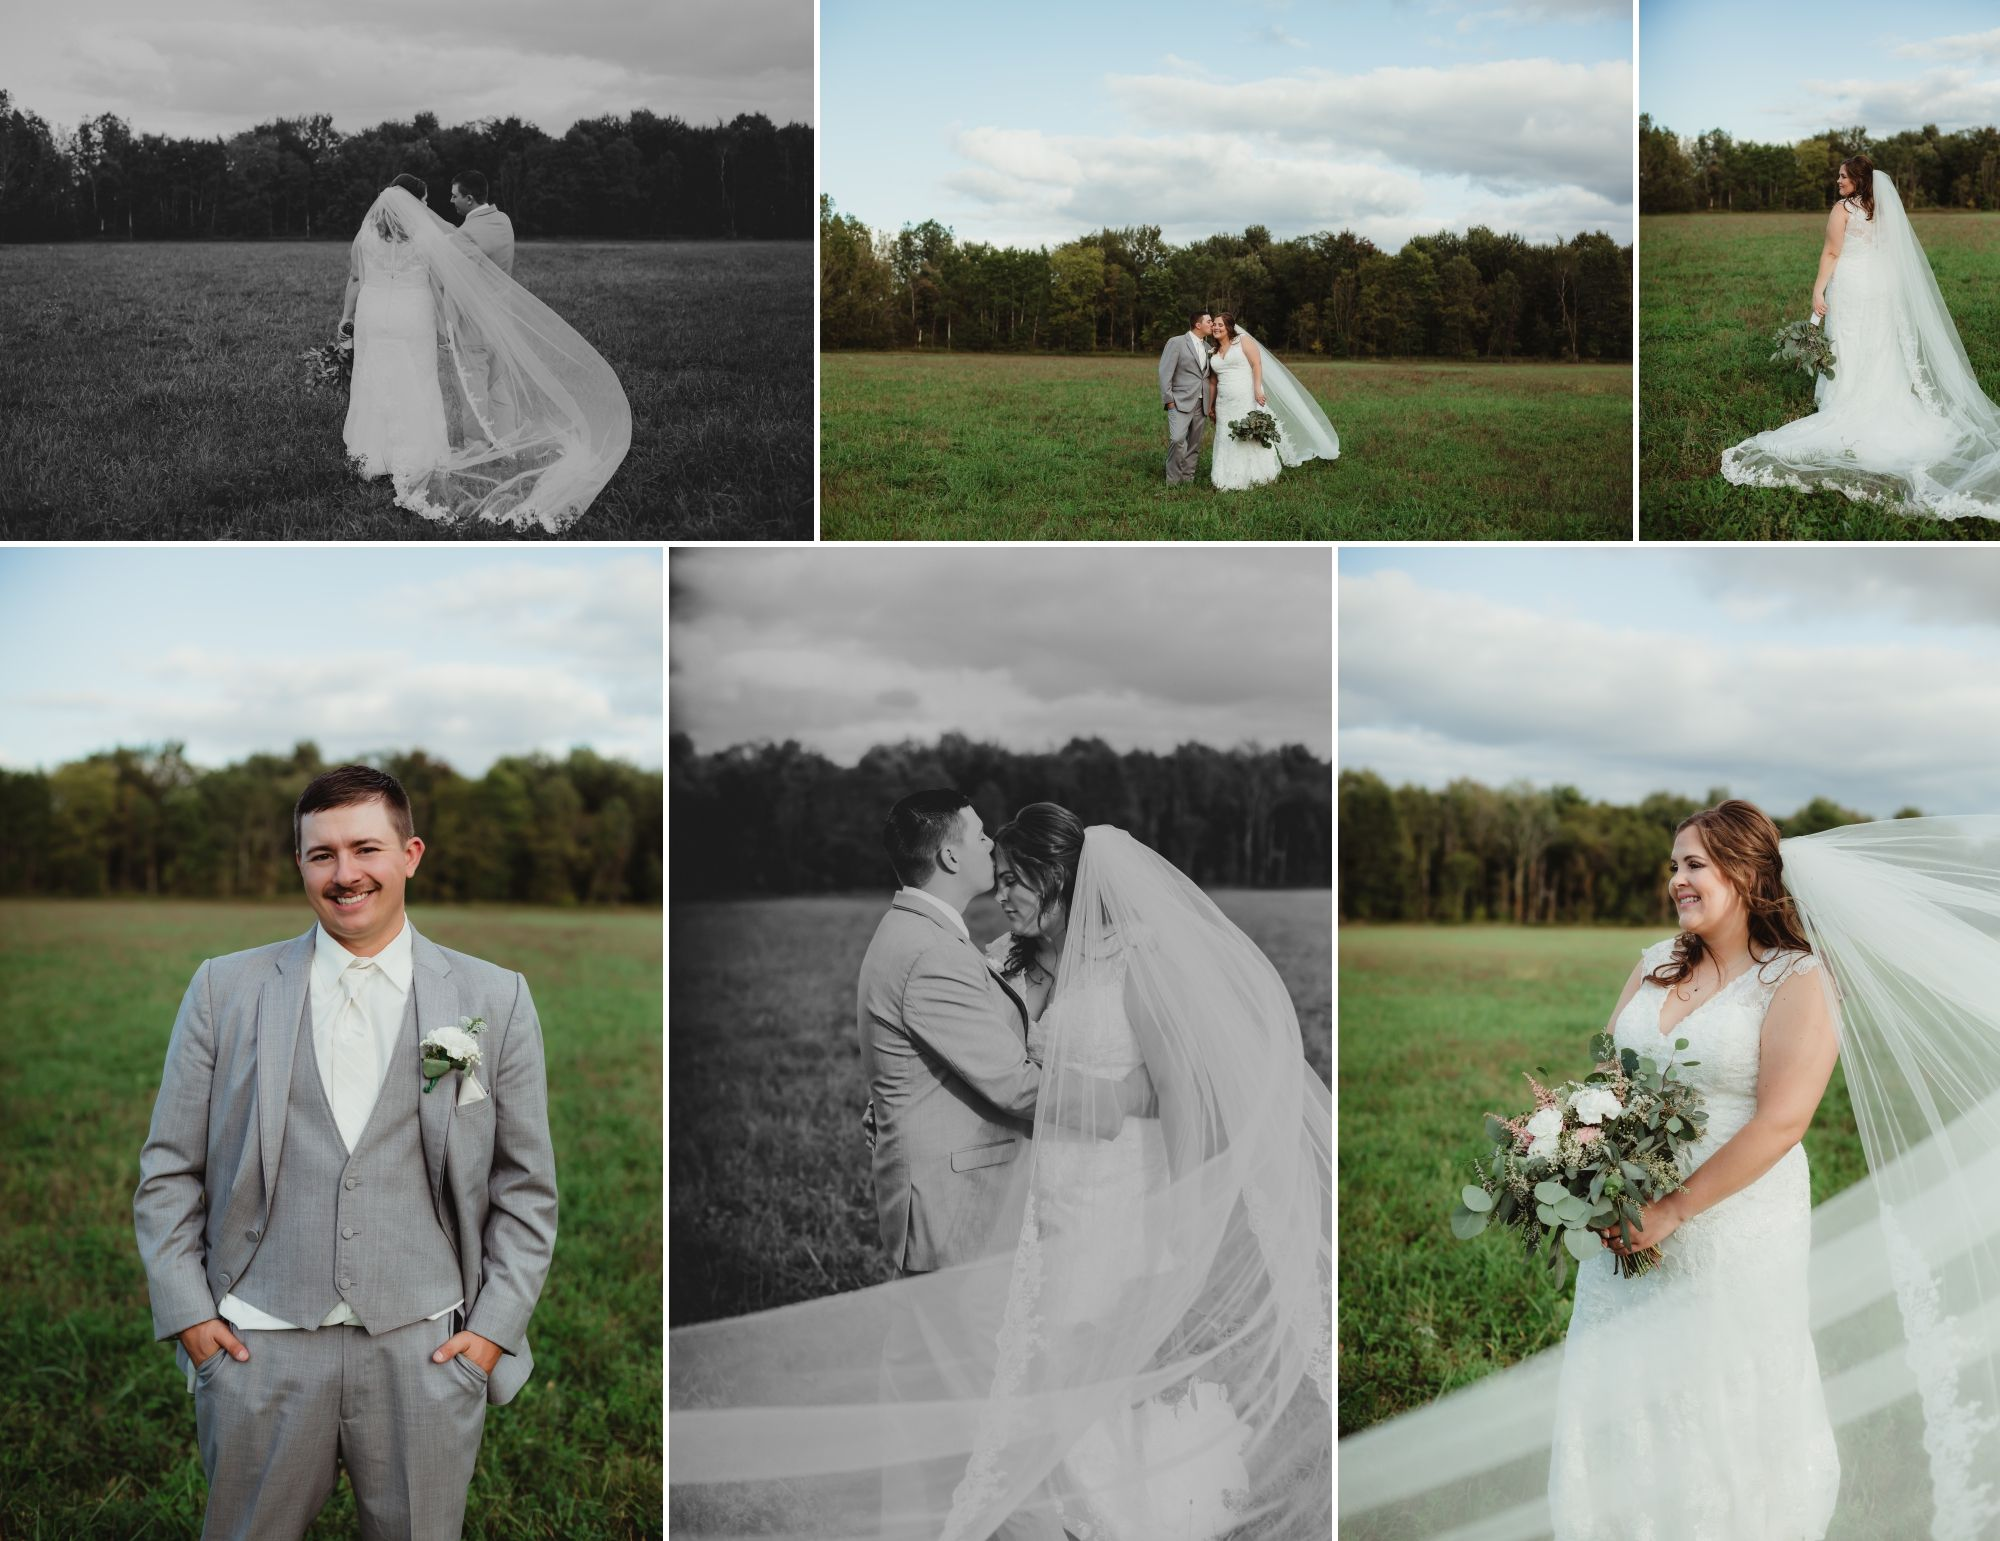 Collage of the bride and groom posing together and separately in a field. Her veil is cathedral length and blows.